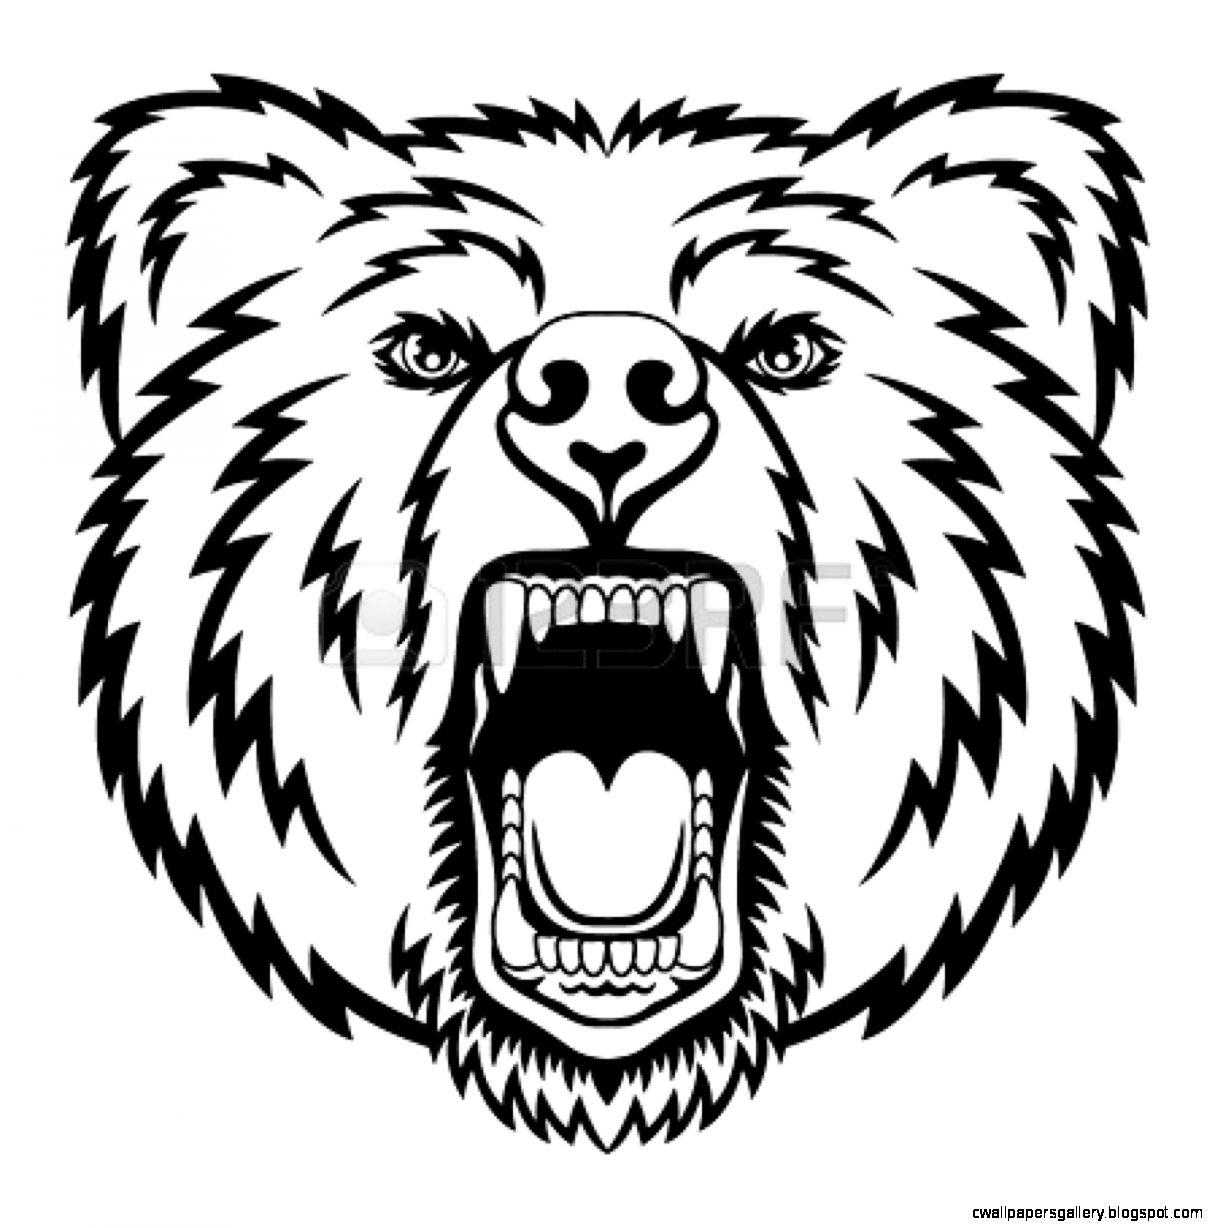 Clipart Growling Bear In Black And White Royalty Free Vector likewise How To Choose Unique Tribal Tattoo likewise 2 besides Sketch Of A Bear Standing further Cross With Wings Tattoo Designs. on scary grizzly bear cartoon